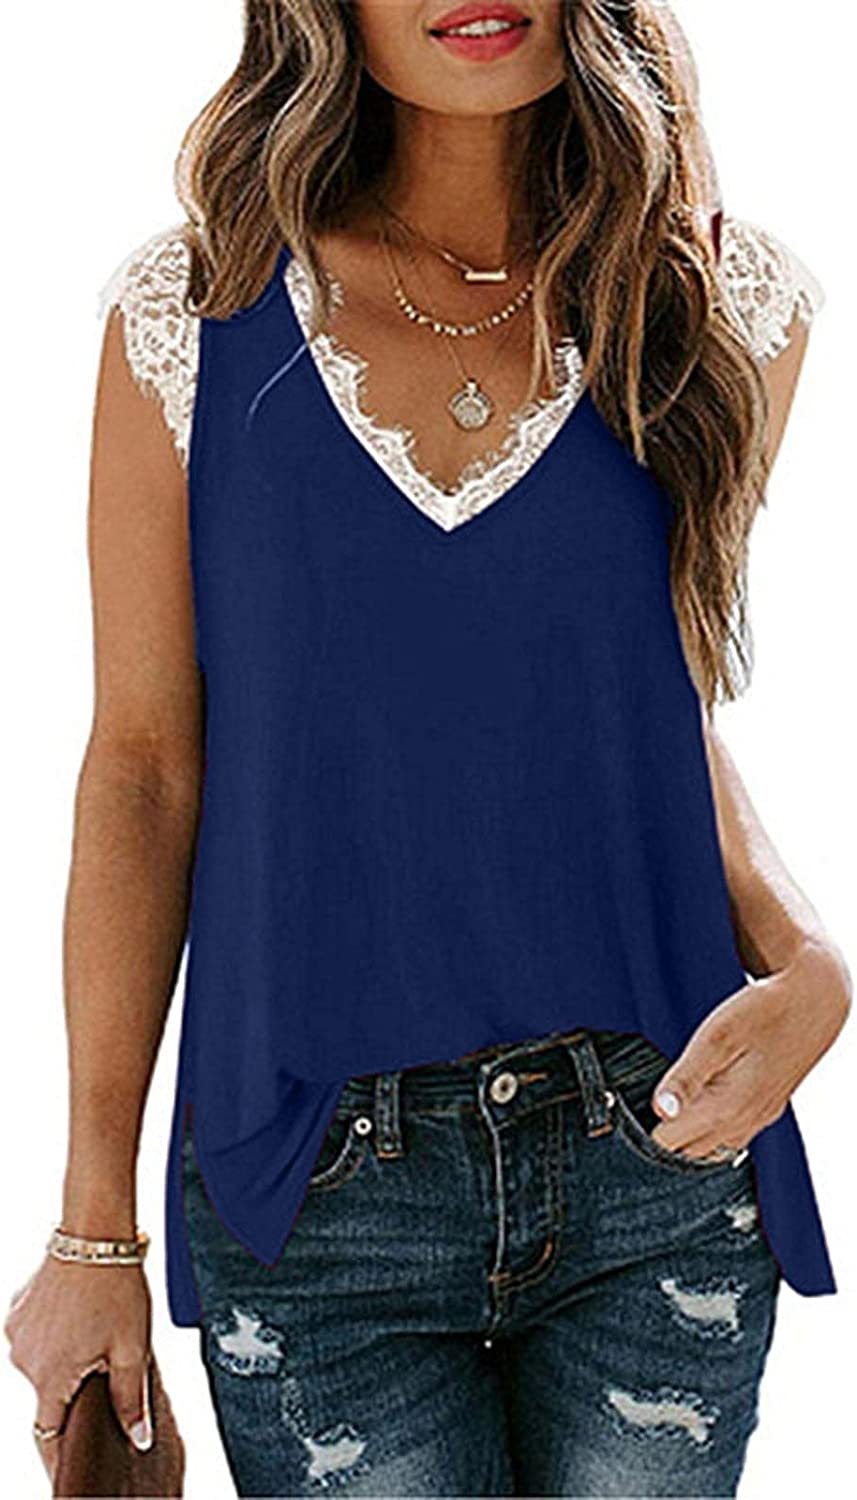 Womens Tank Tops Dressy,Tank Tops for Women V Neck Lace Solid Color Loose Fit Sleeveless Tops Shirts